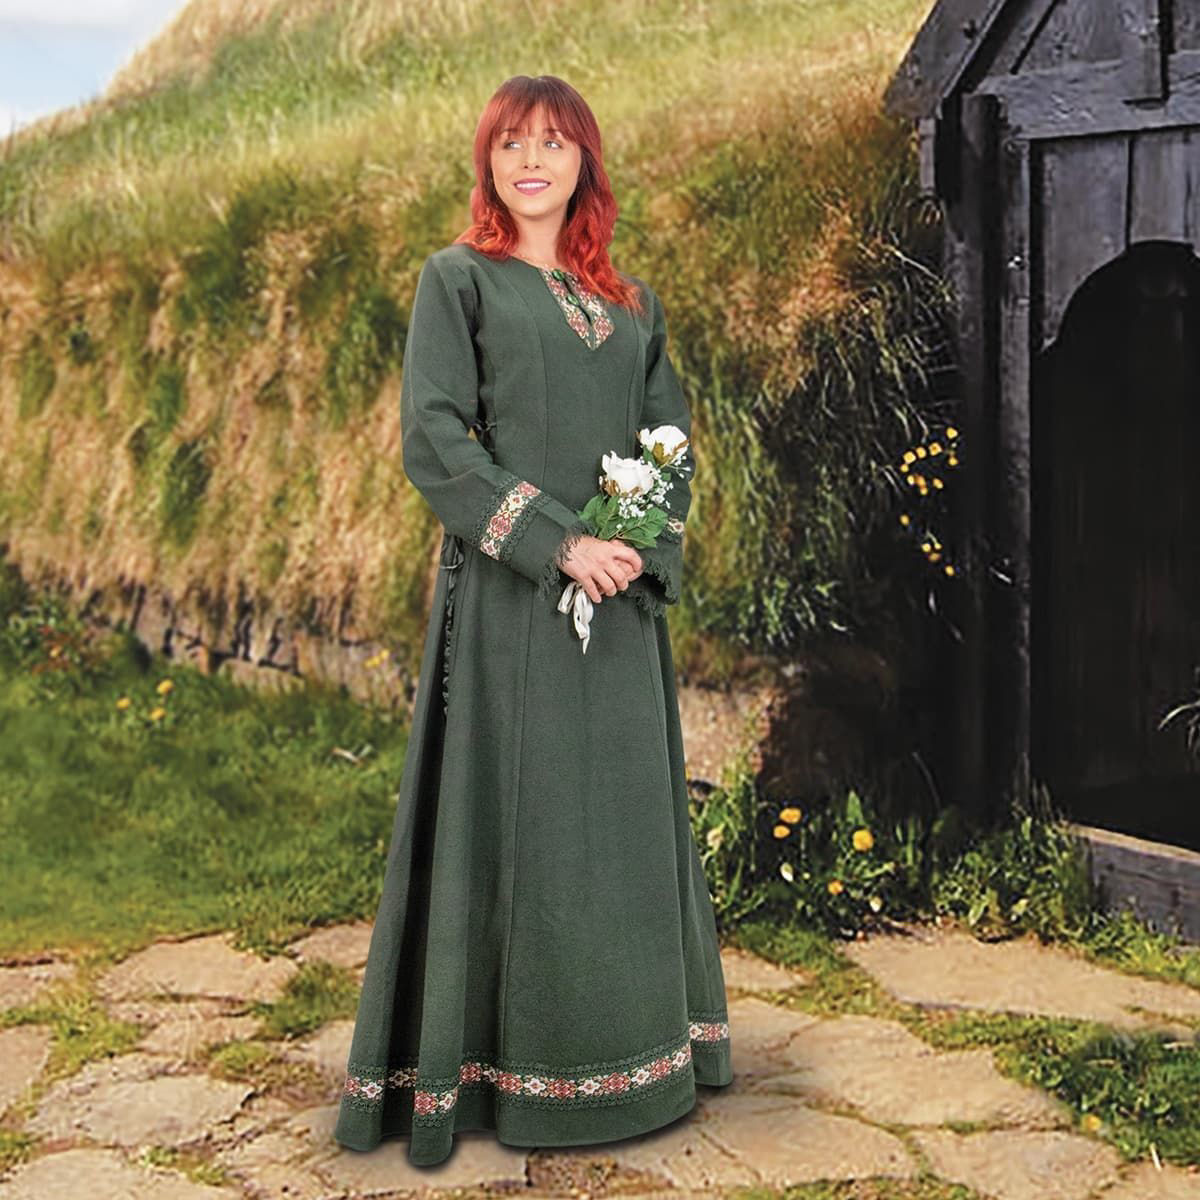 Norse Medieval Viking Dress in Green